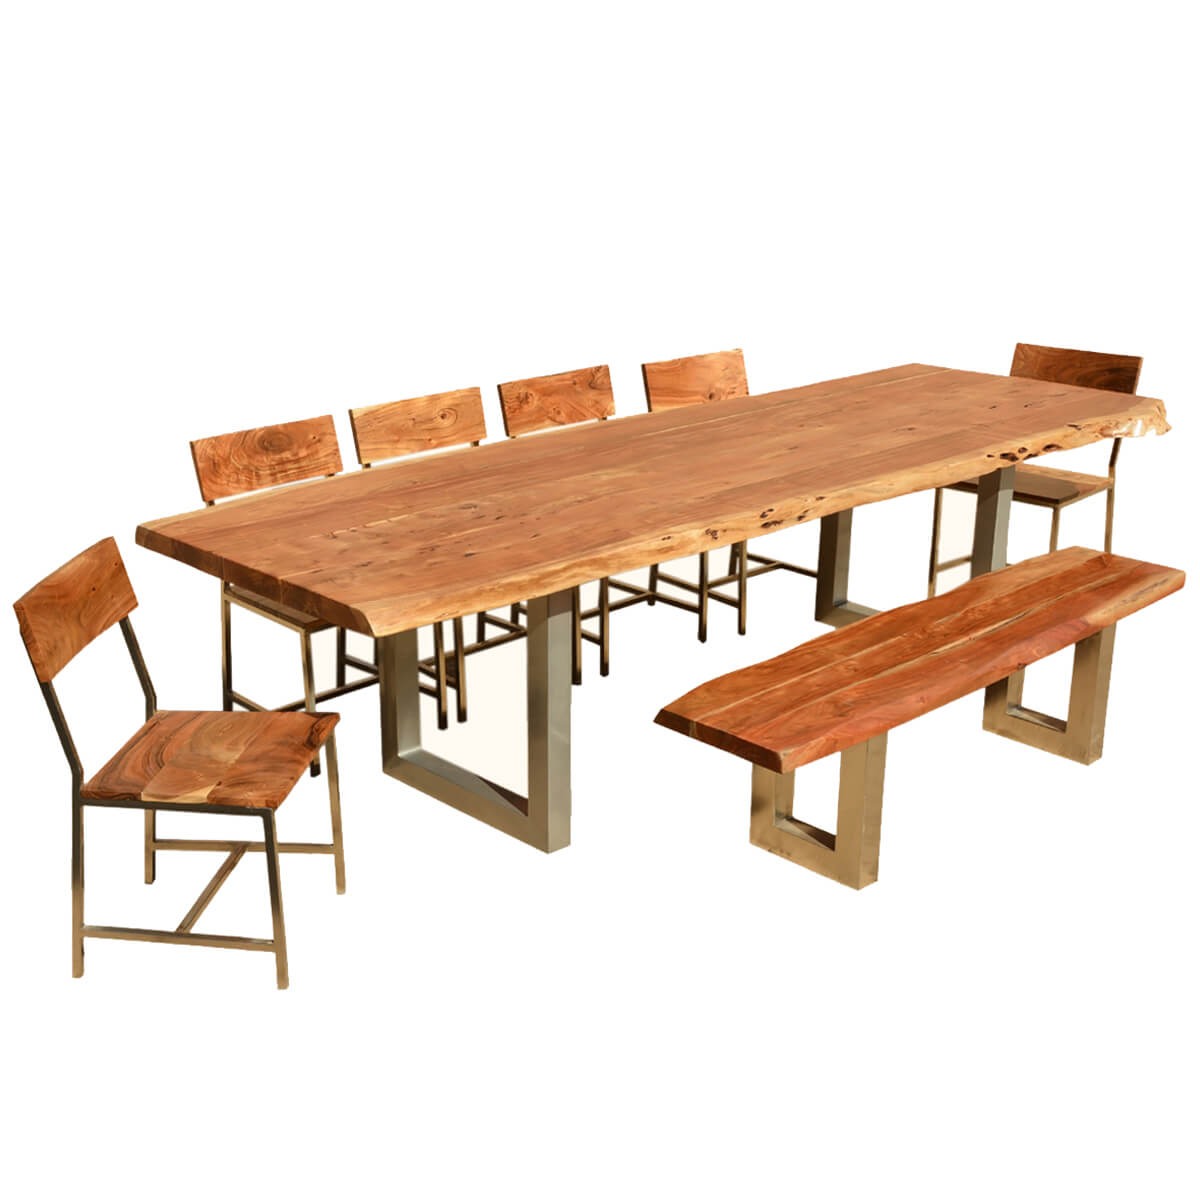 117 Quot Live Edge Dining Table W 6 Chairs Amp Bench Acacia